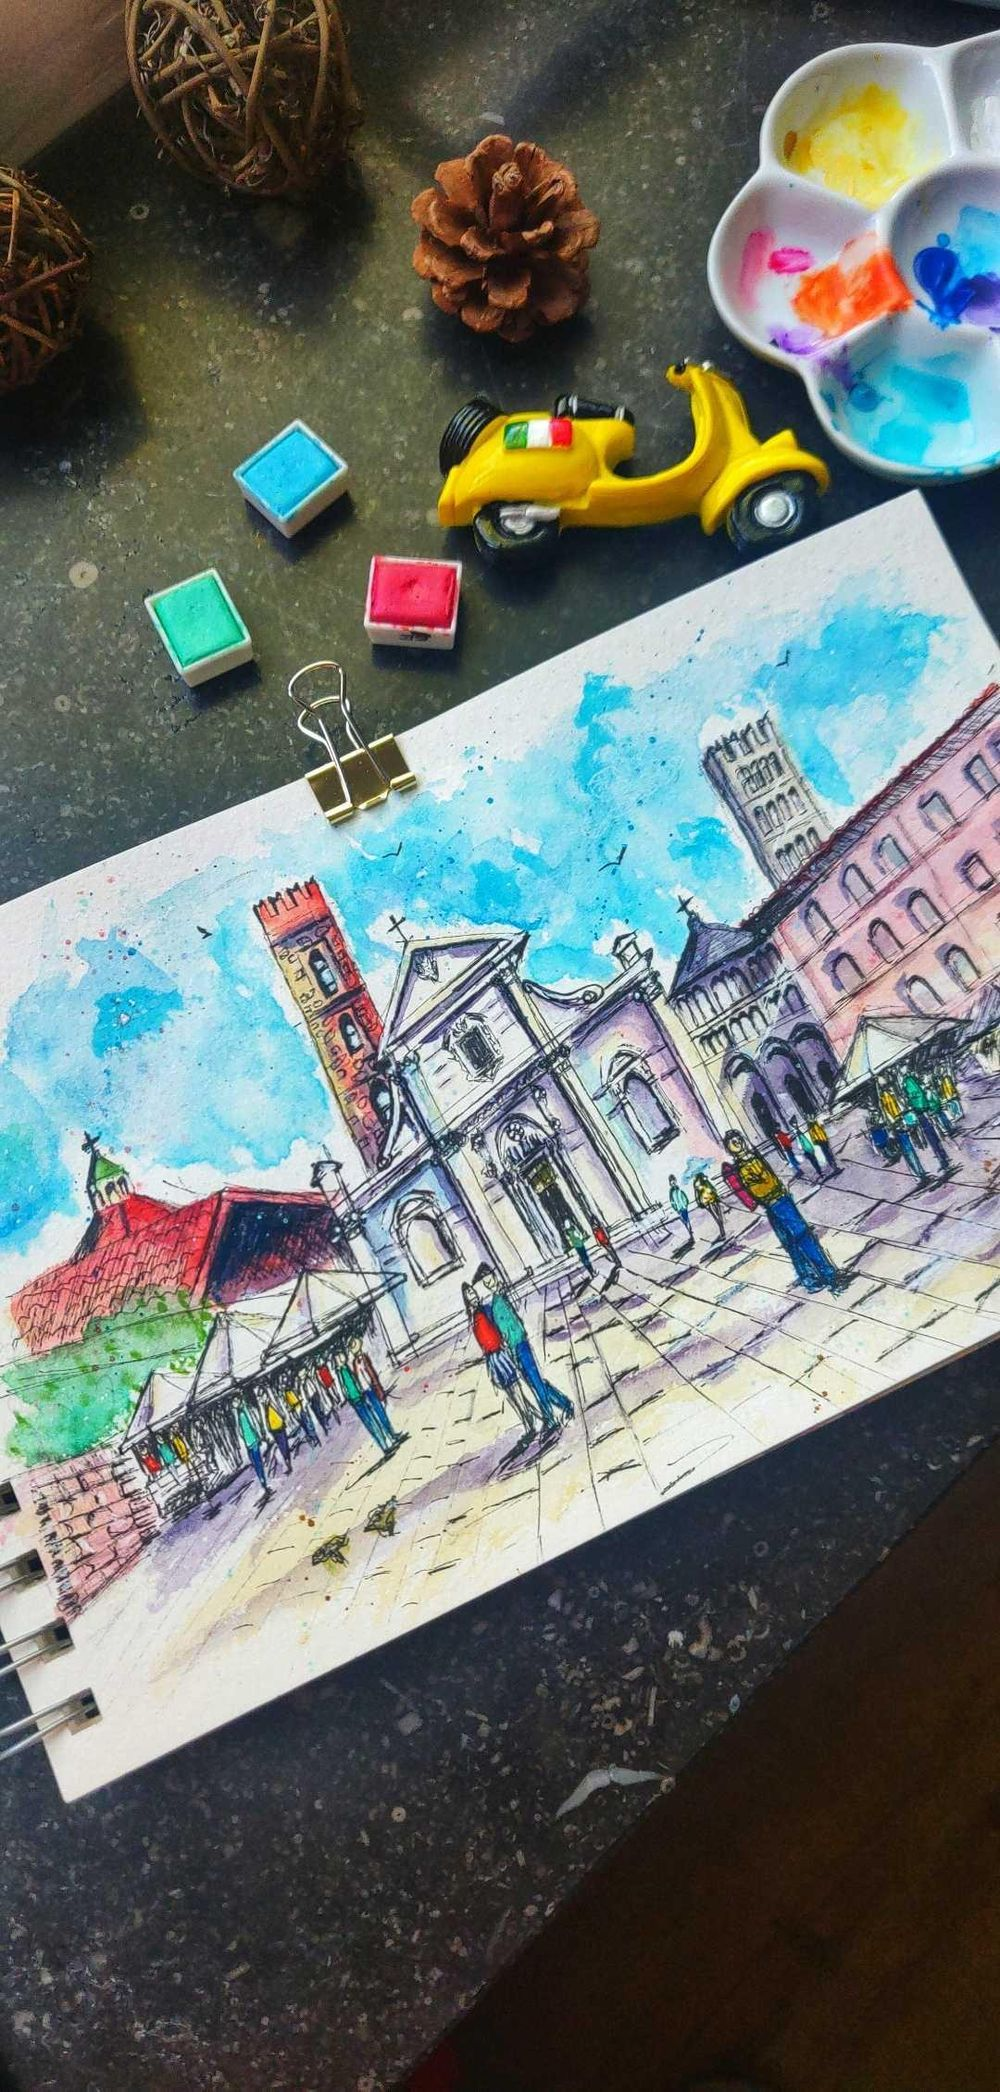 Lucca, Italy - image 3 - student project